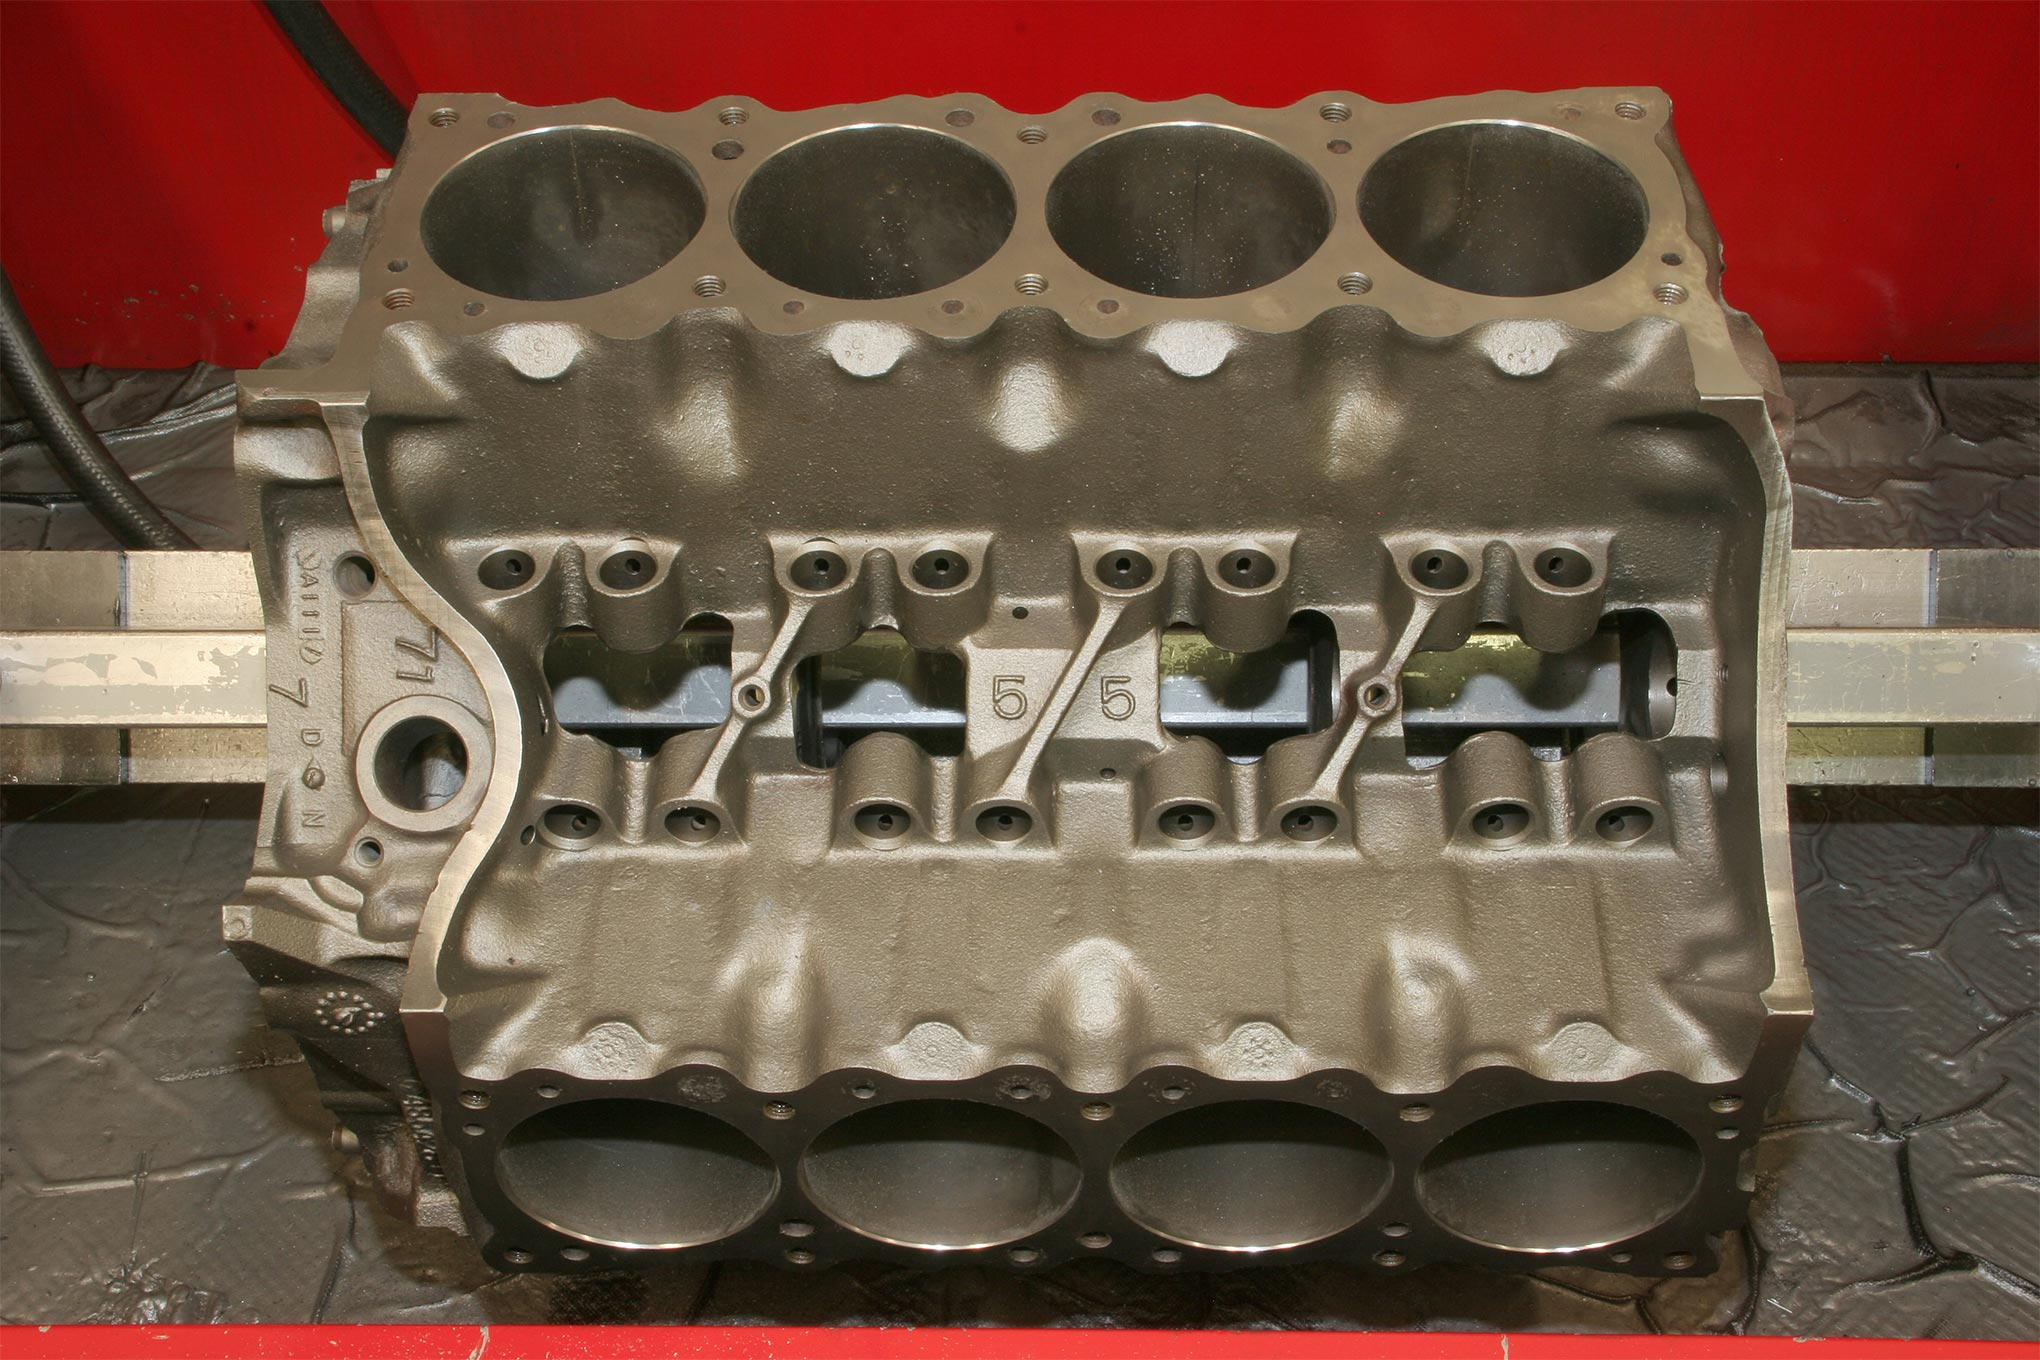 Most Pontiac 400 and 455s were equipped with two-bolt main caps, and they are quite sufficient to at least 600 hp and even more. Aged factory fasteners can be replaced with new units from ARP before the machining process if desired.